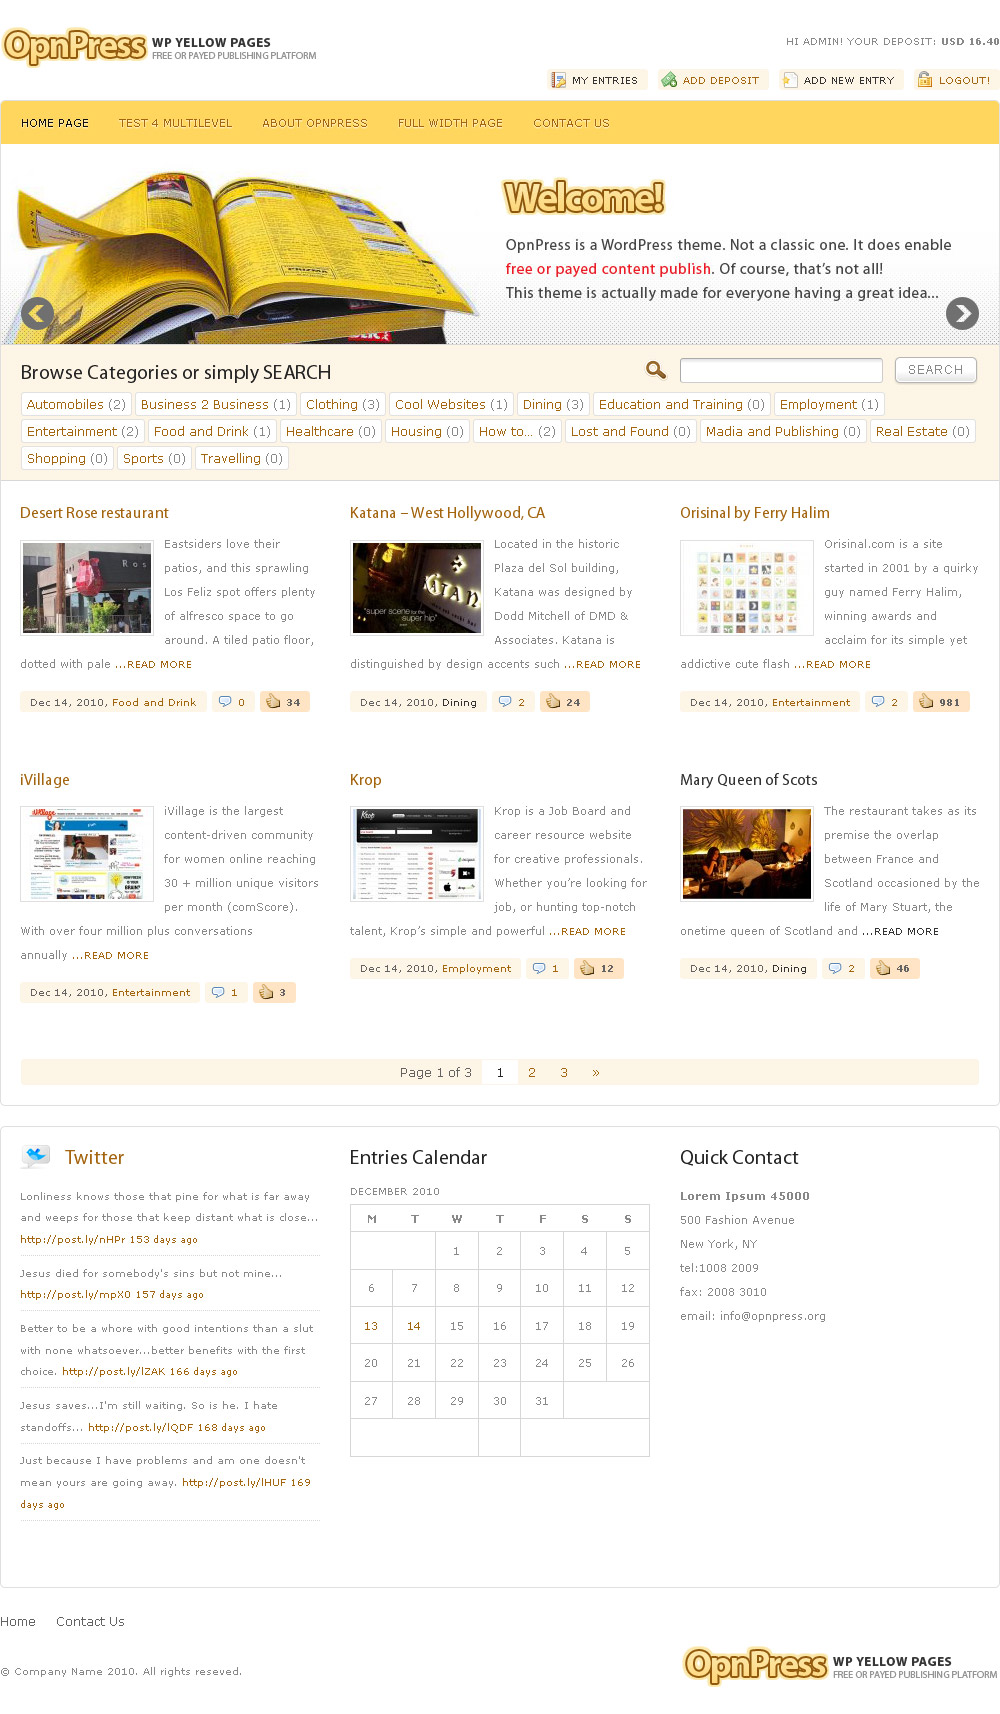 Sofa OpnPress - Publishing Platform - Home page layout.